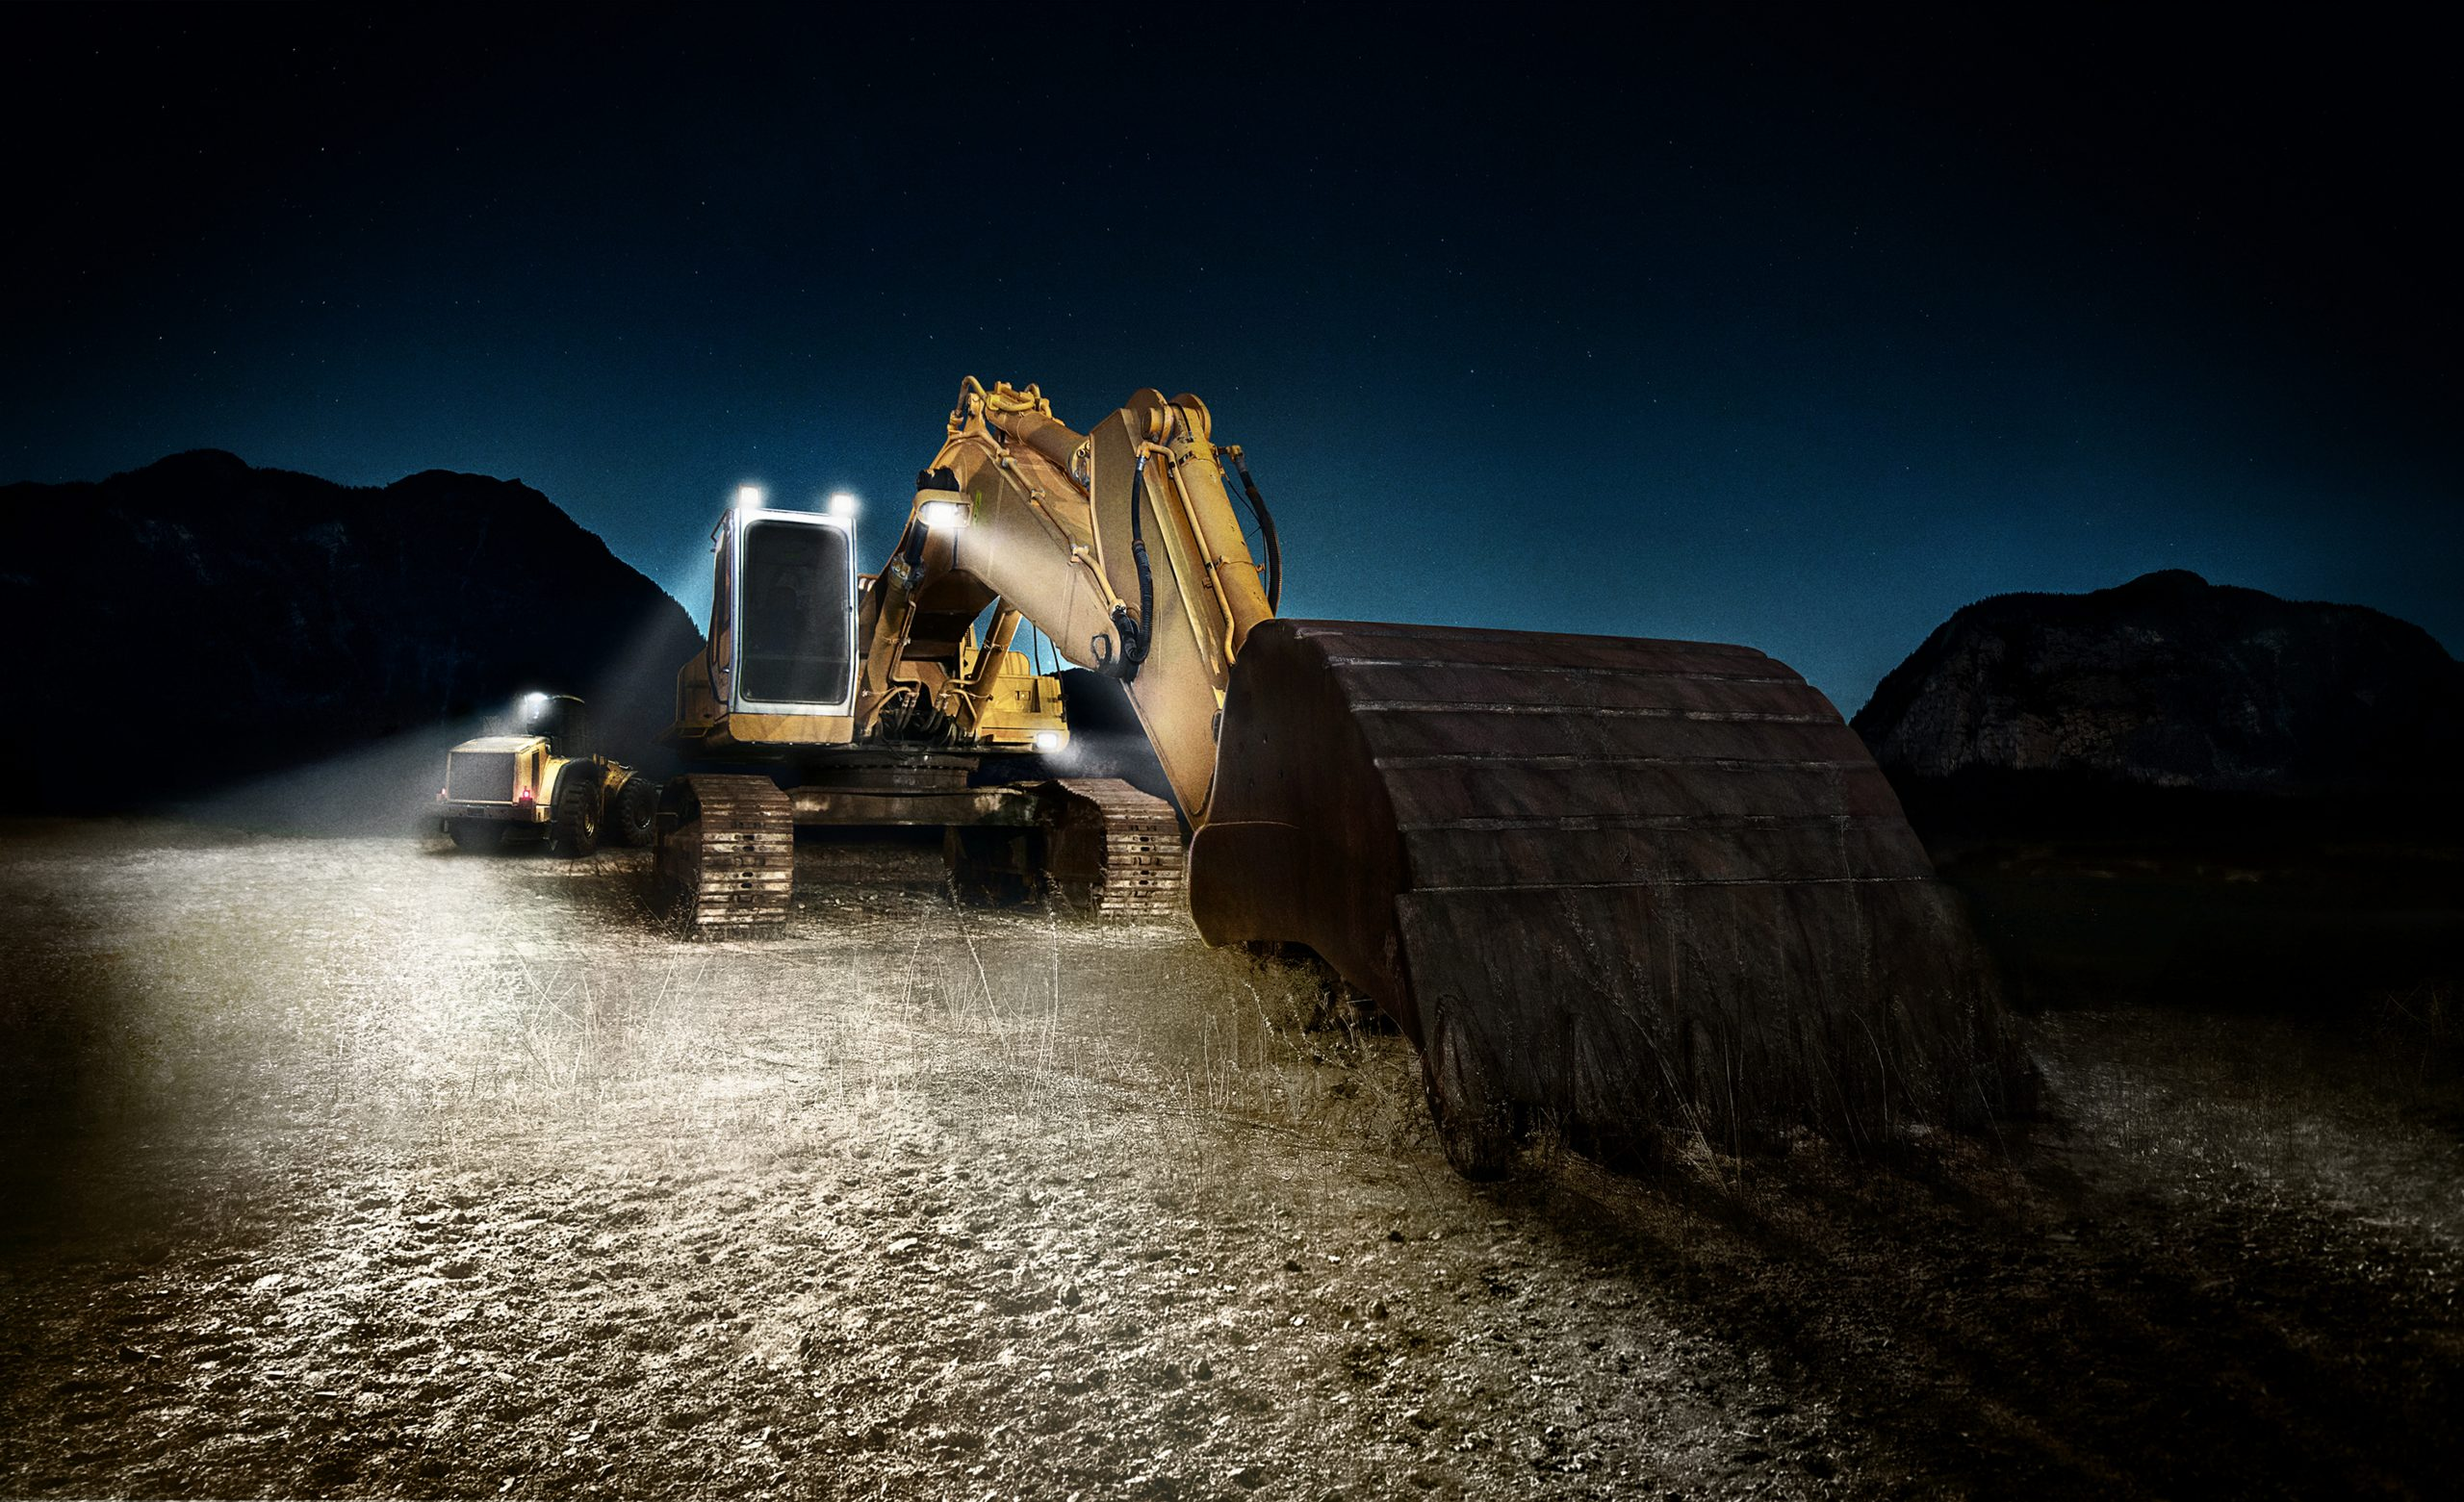 LEDriving® working lights enable construction to continue around the clock